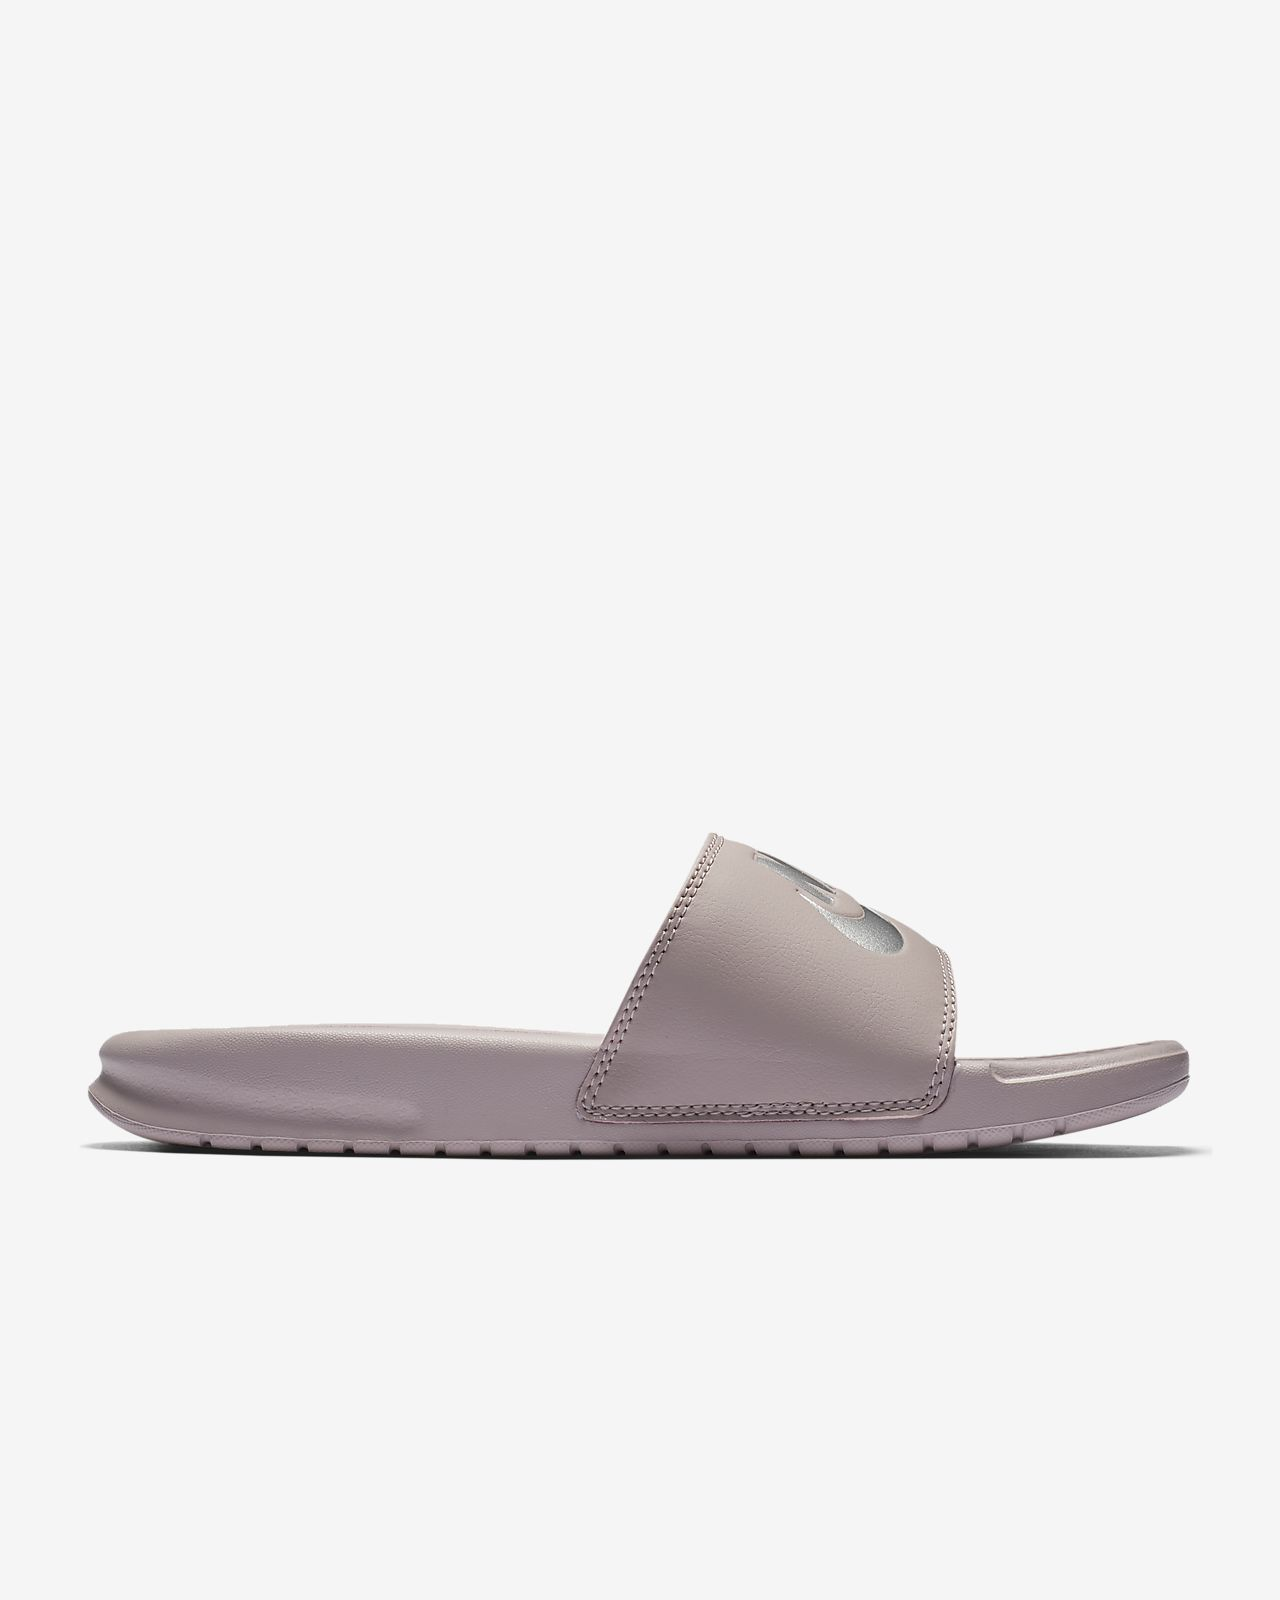 1cd5906b0cc1 Nike Benassi Women s Slide. Nike.com NZ